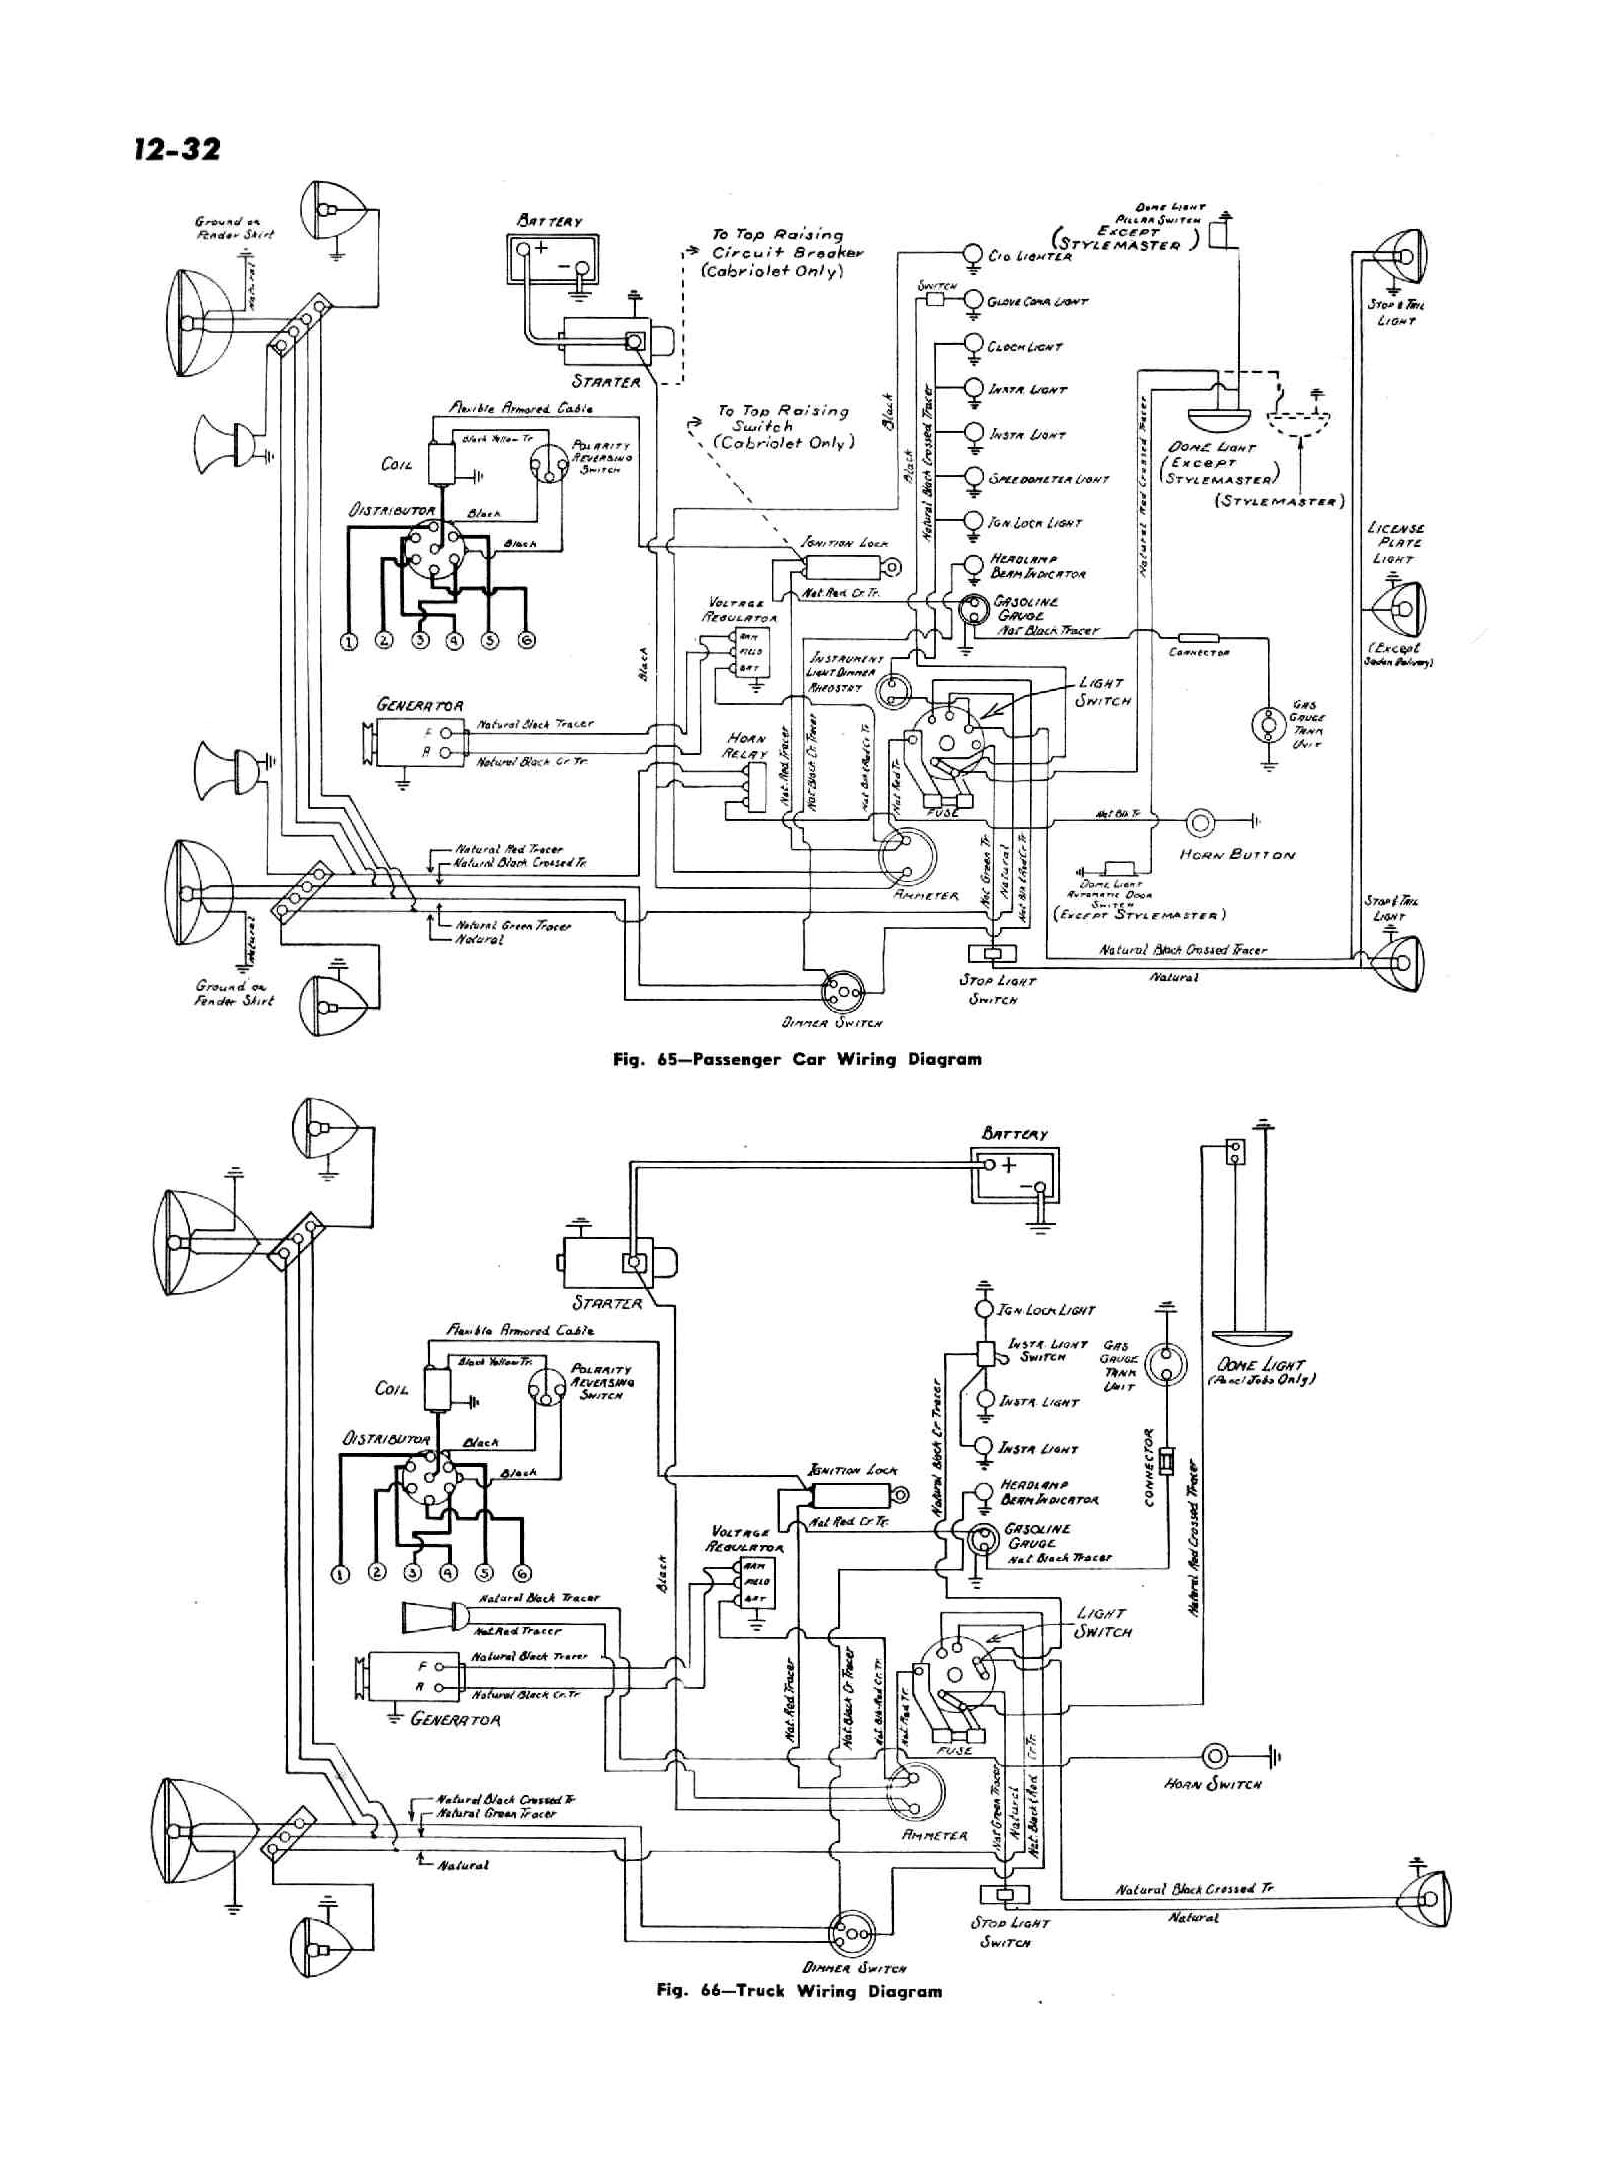 4247csm1232 chevy wiring diagrams chevy radio wiring \u2022 wiring diagrams j 1959 chevy truck wiring diagram at webbmarketing.co